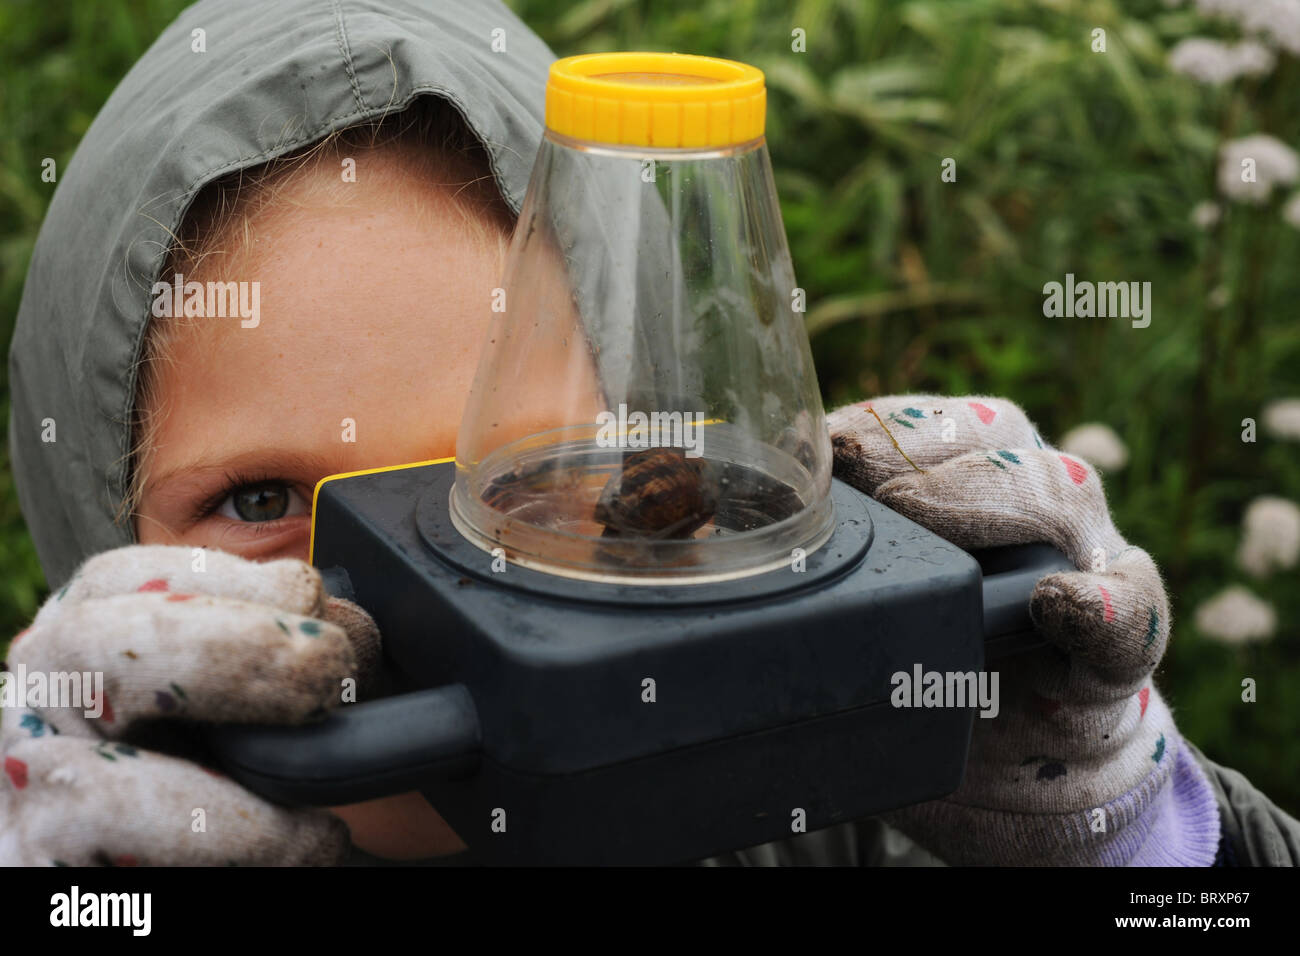 A girl studies a snail close up through a microscope during a visit to local allotments, Bradford - Stock Image